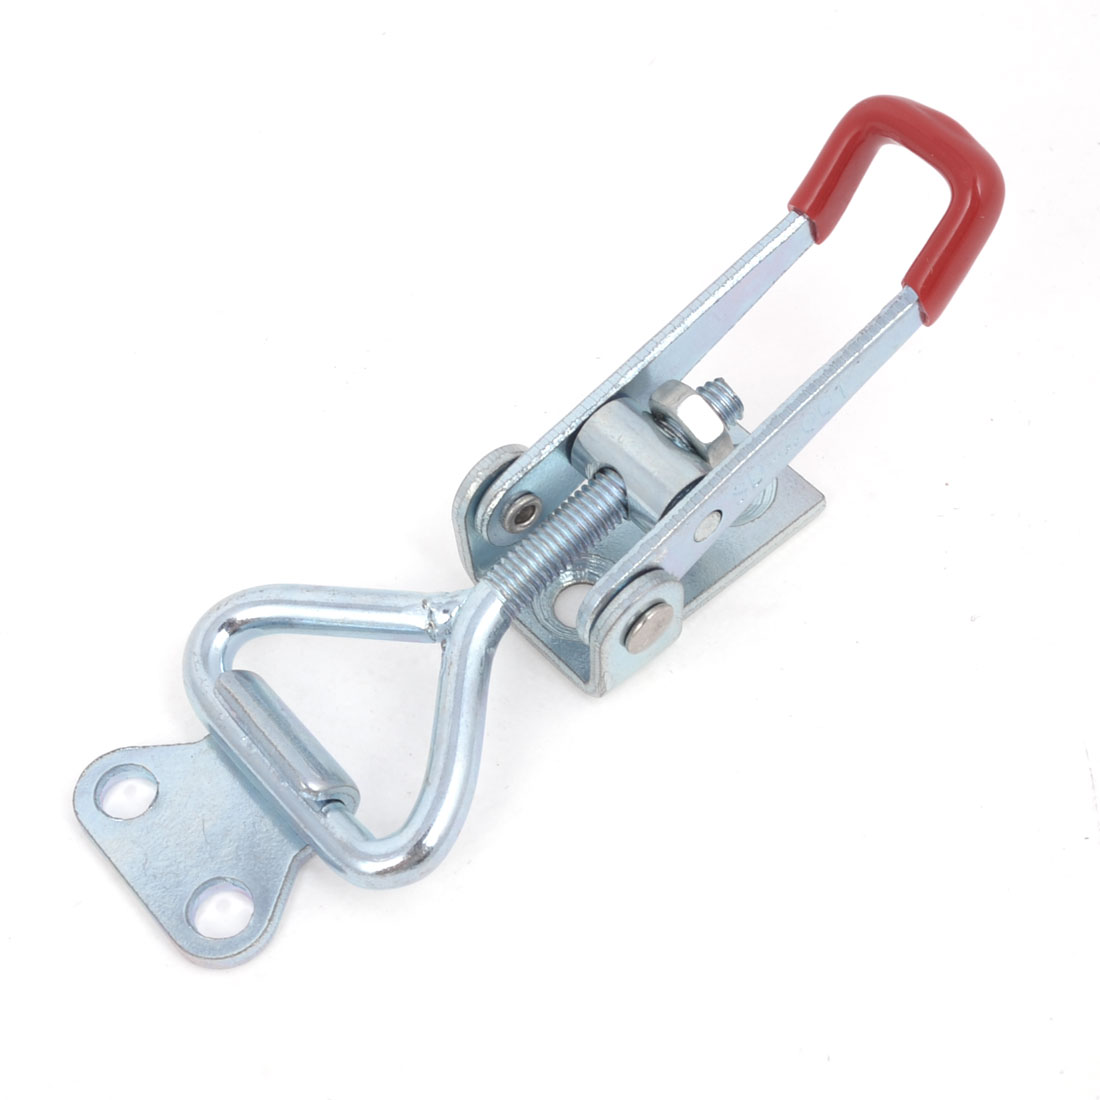 Cupboard Metal Lever Handle Toggle Catch Latch Lock Clamp Hasp 3.3""